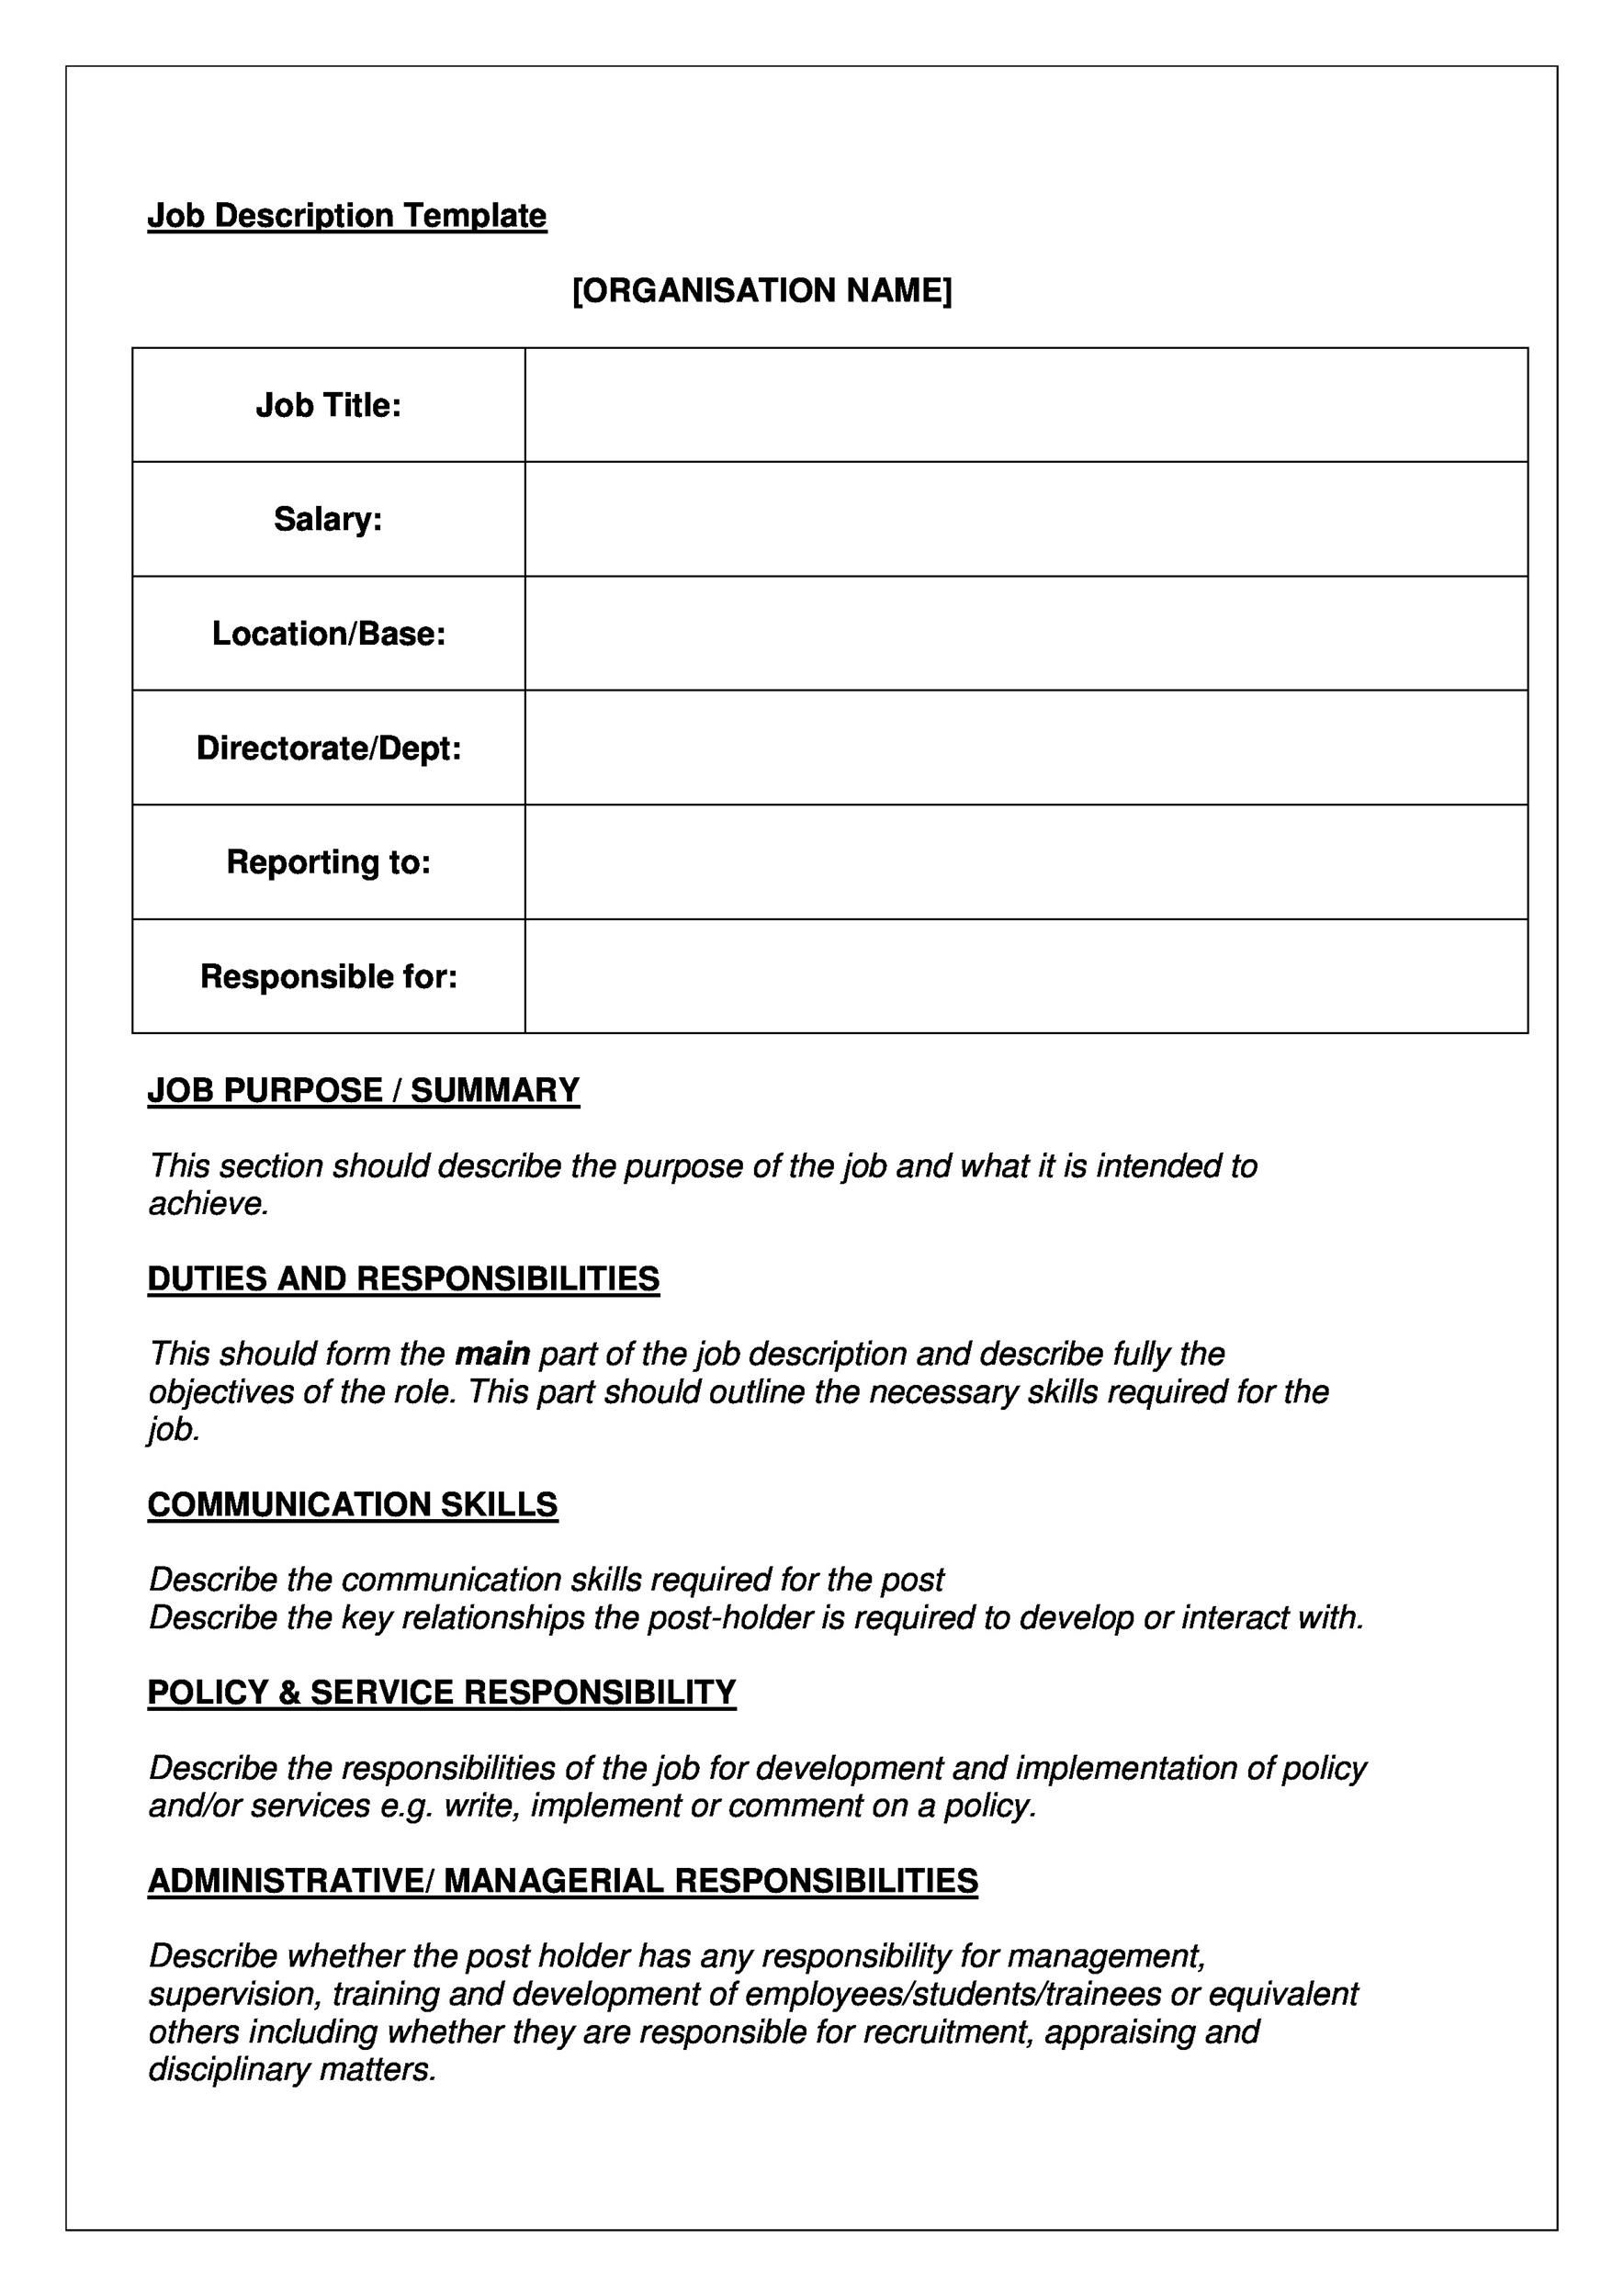 005 Stupendou Blank Job Description Template Picture  Ks2 Word Free PrintableFull